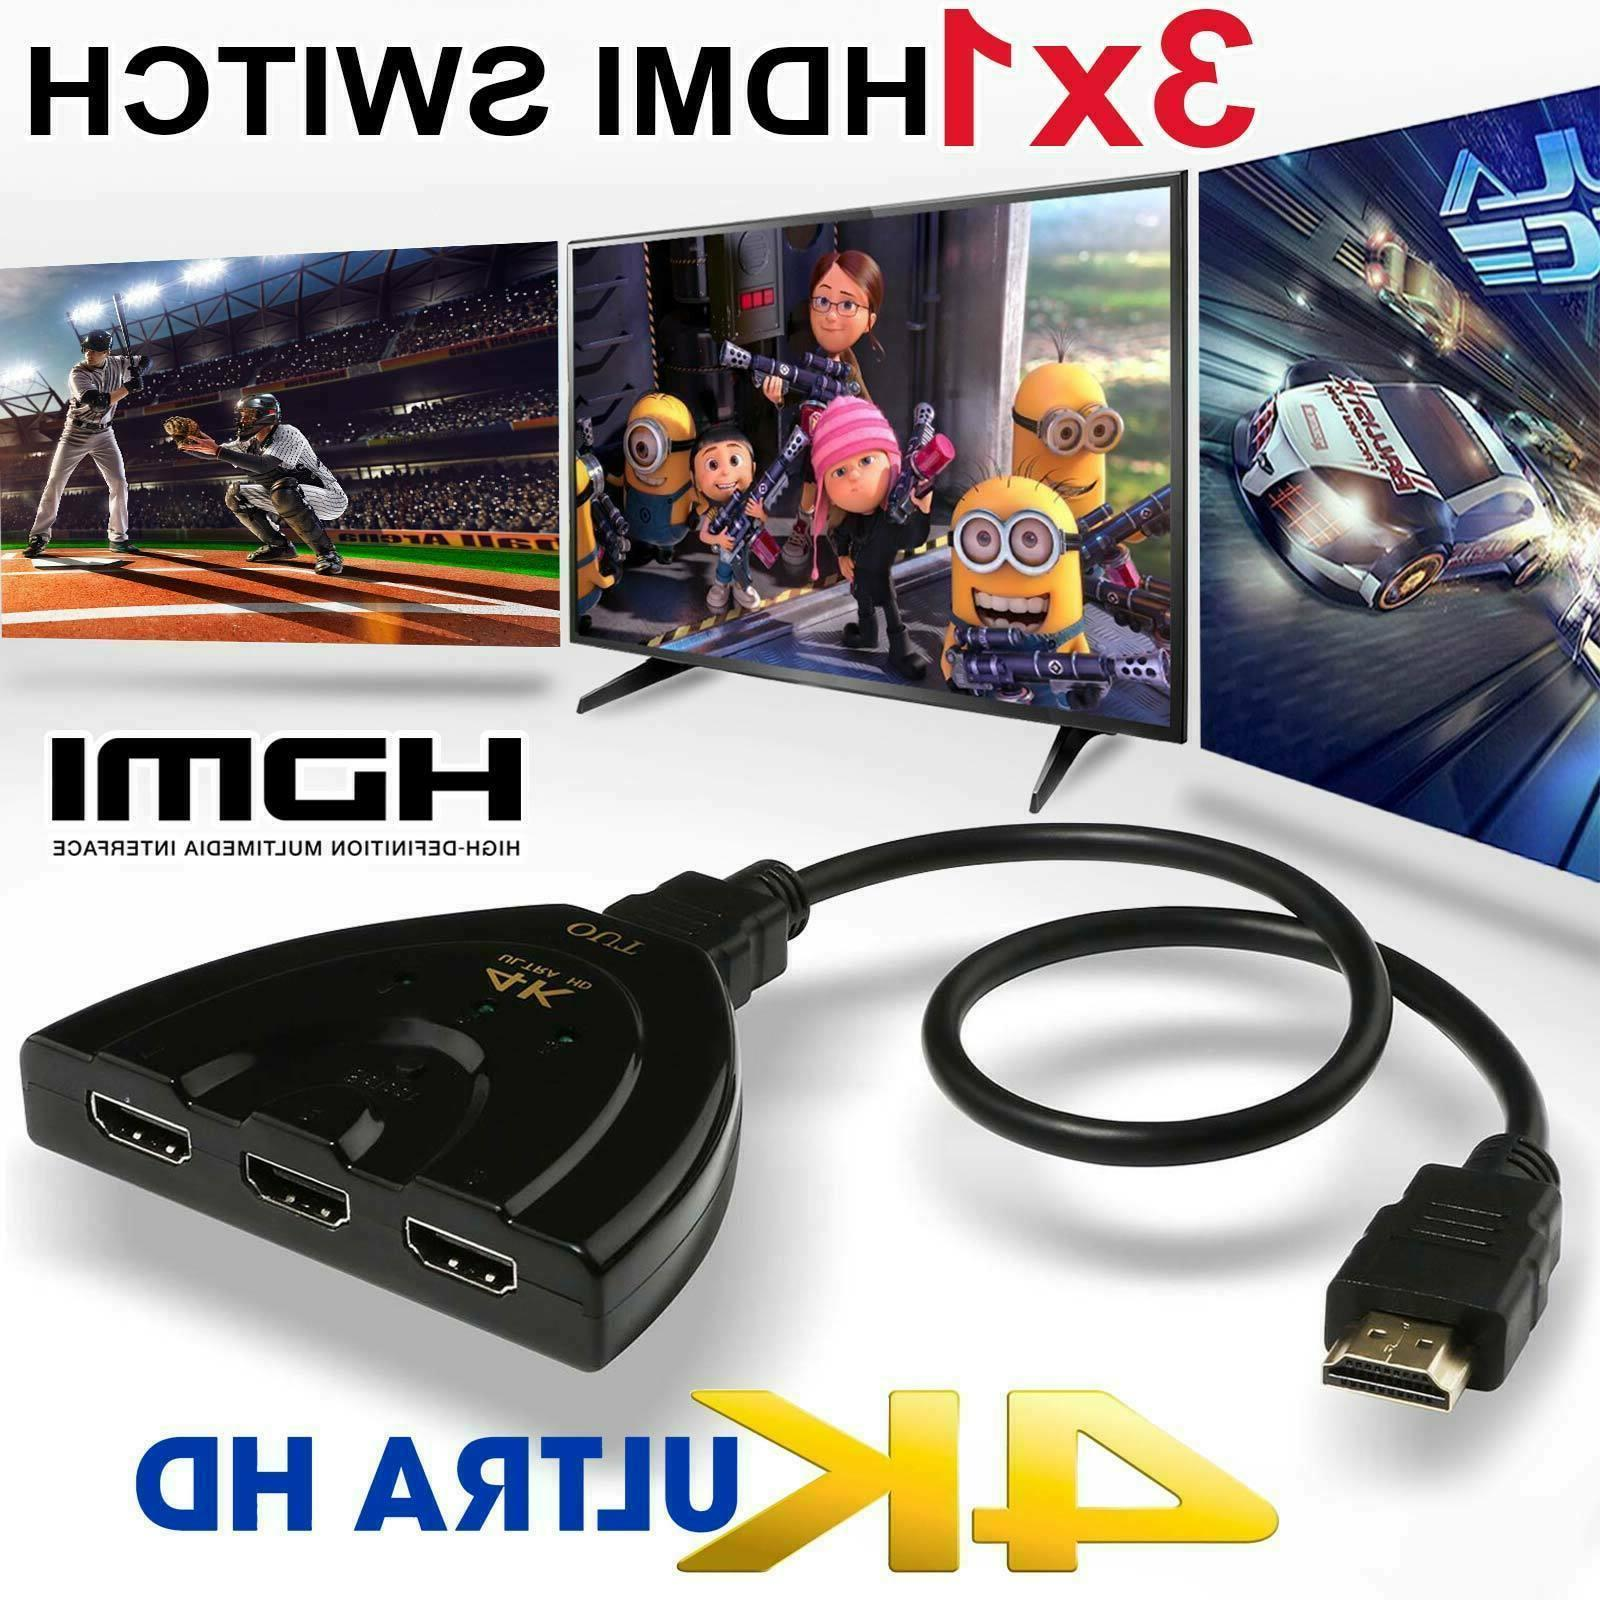 3 port hdmi splitter cable 1080 4k